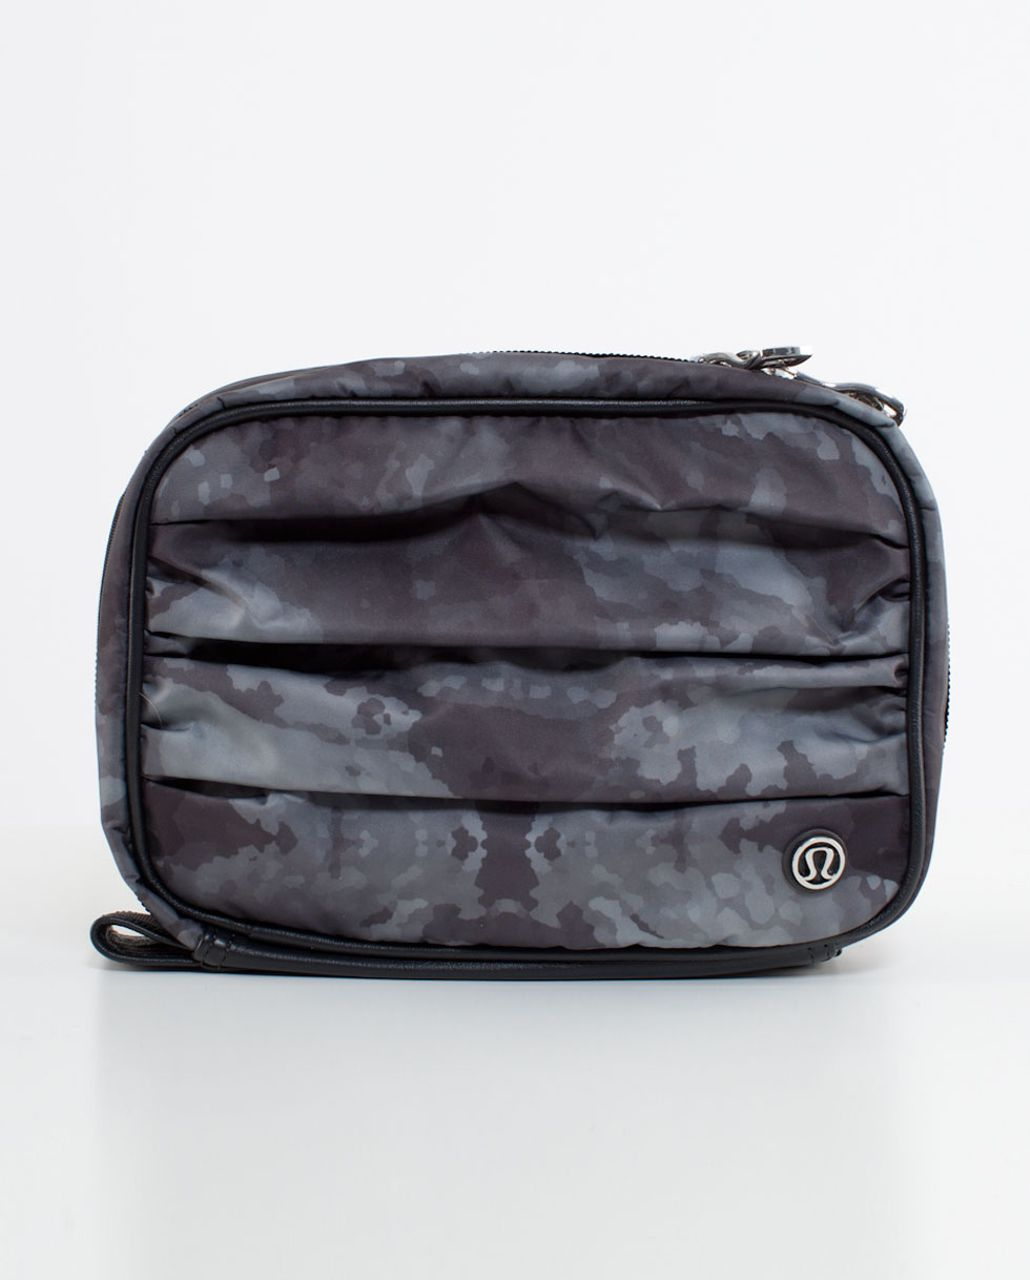 Lululemon Gym Essentials Kit - Deep Coal Creekside Camo